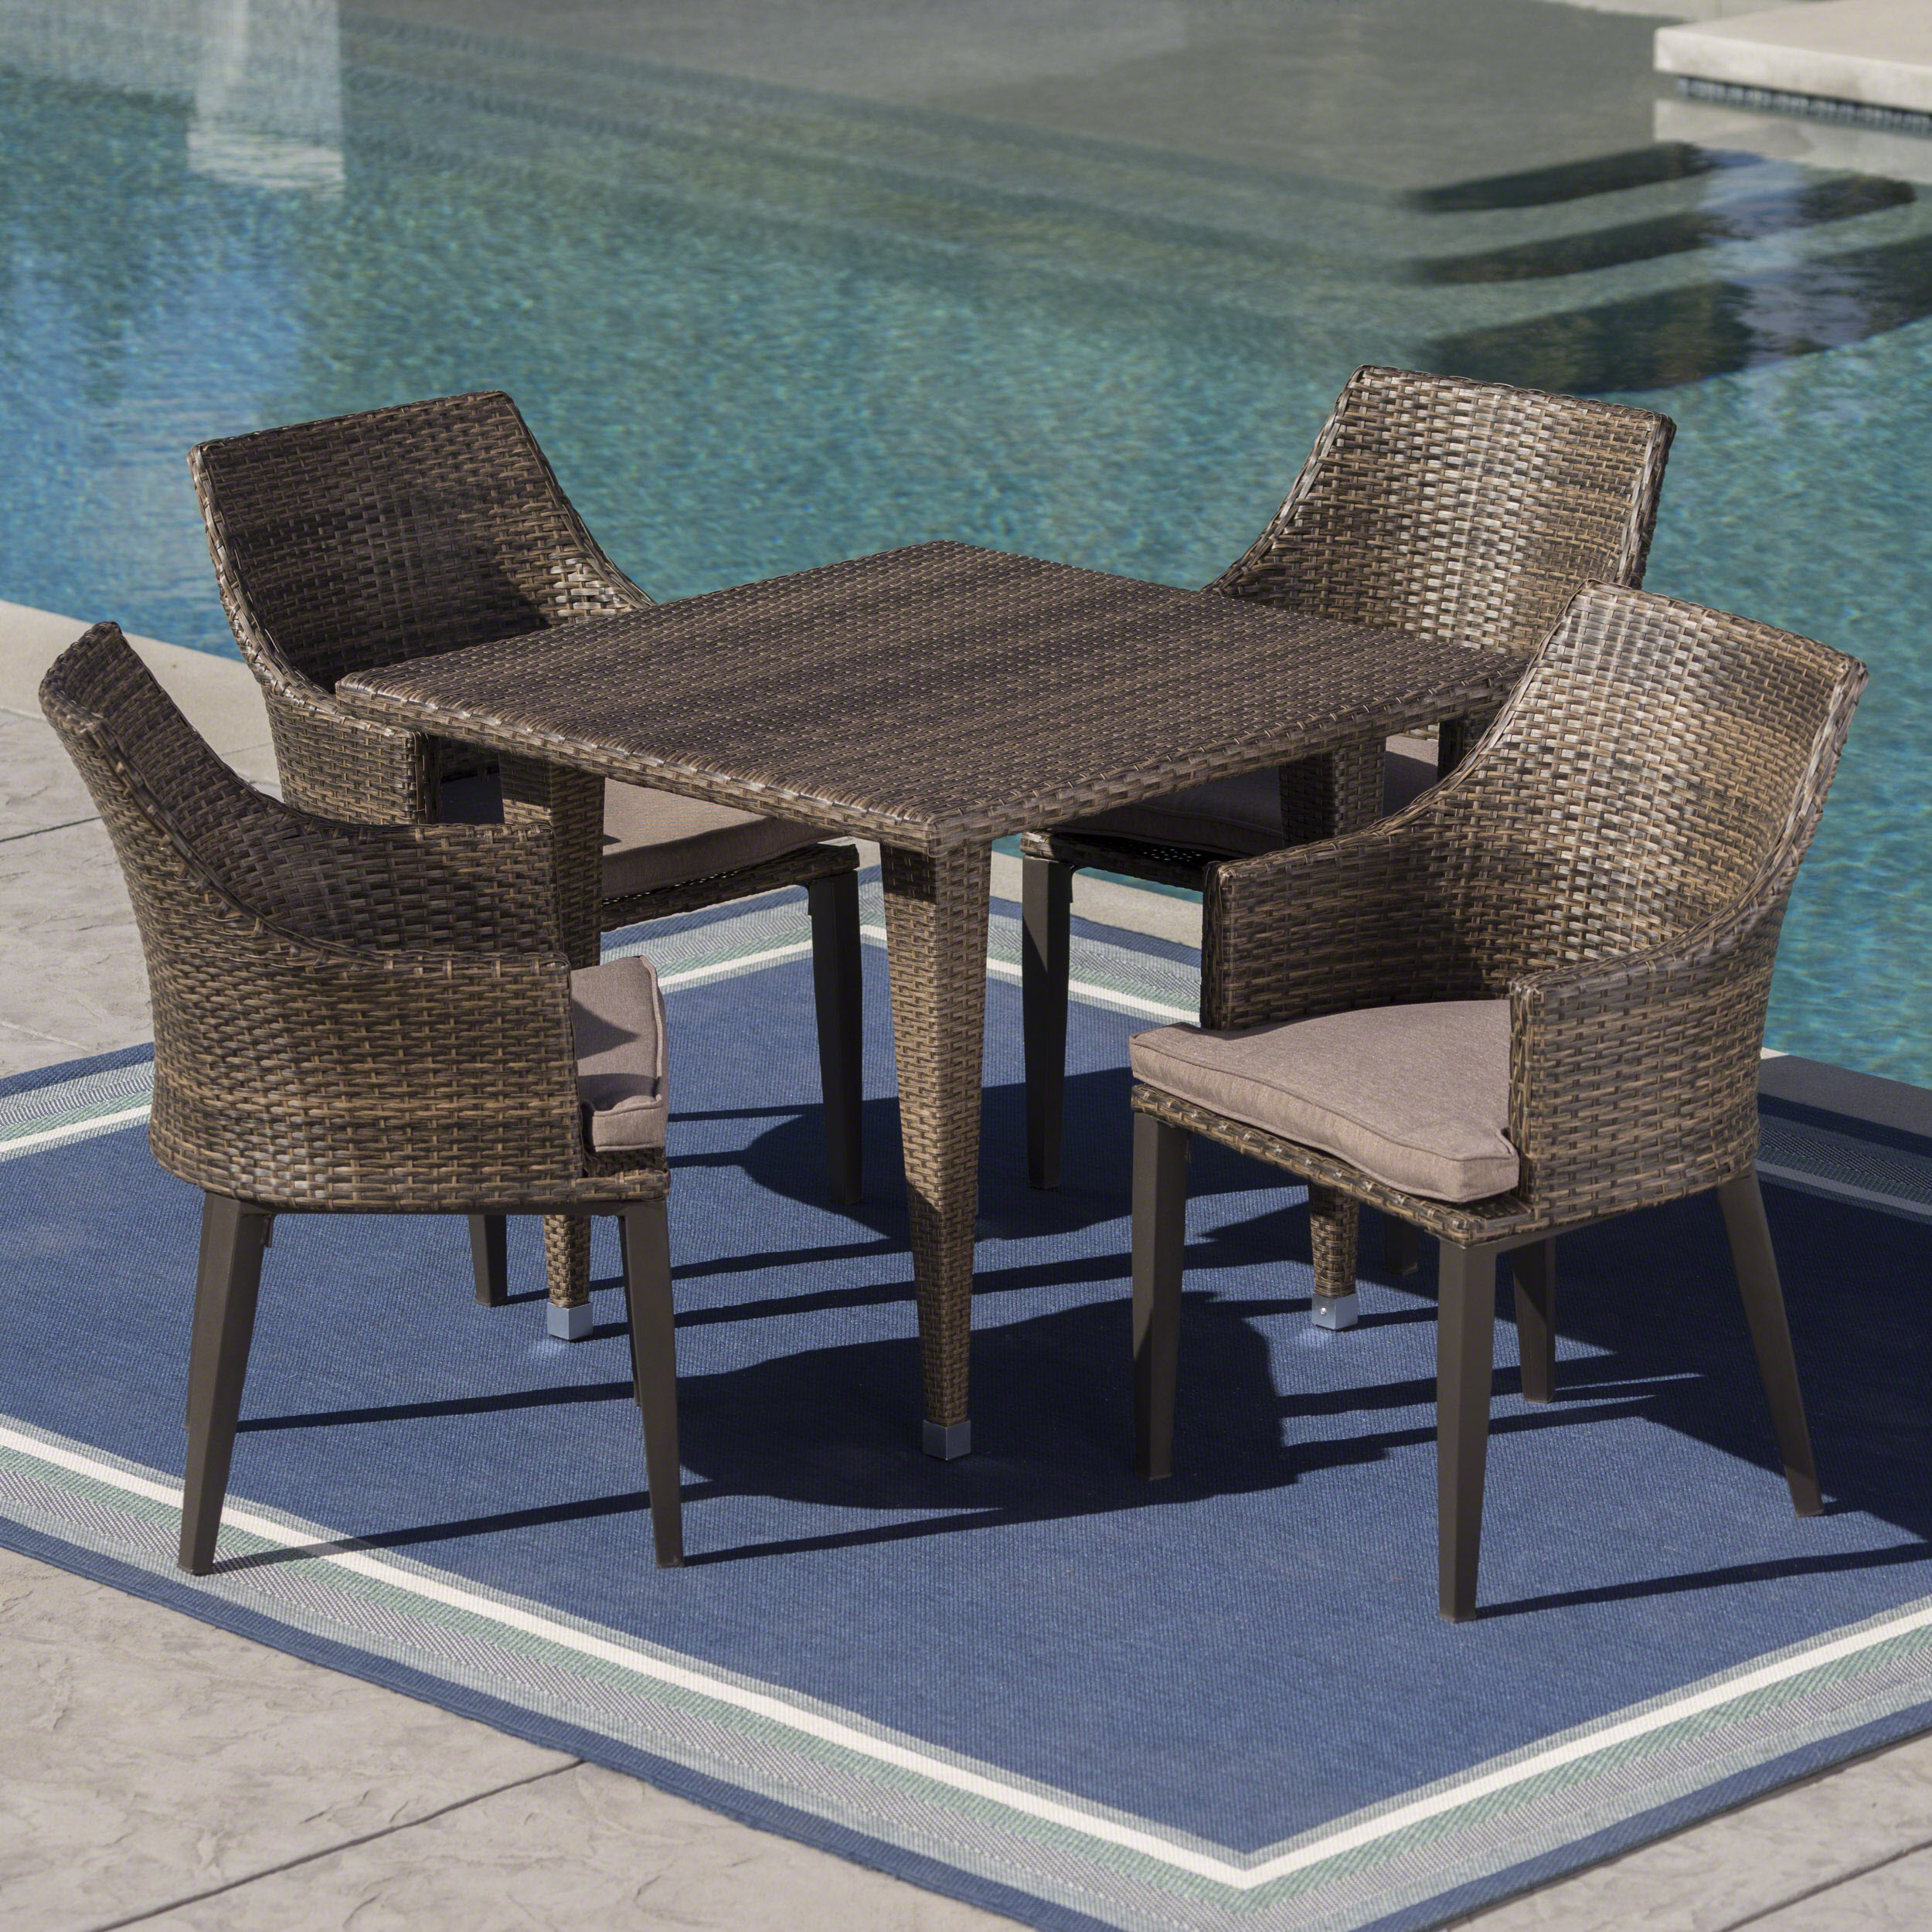 Pacific Outdoor 5 Piece Wicker Square Dining Set with Water Resistant Cushions, Mocha